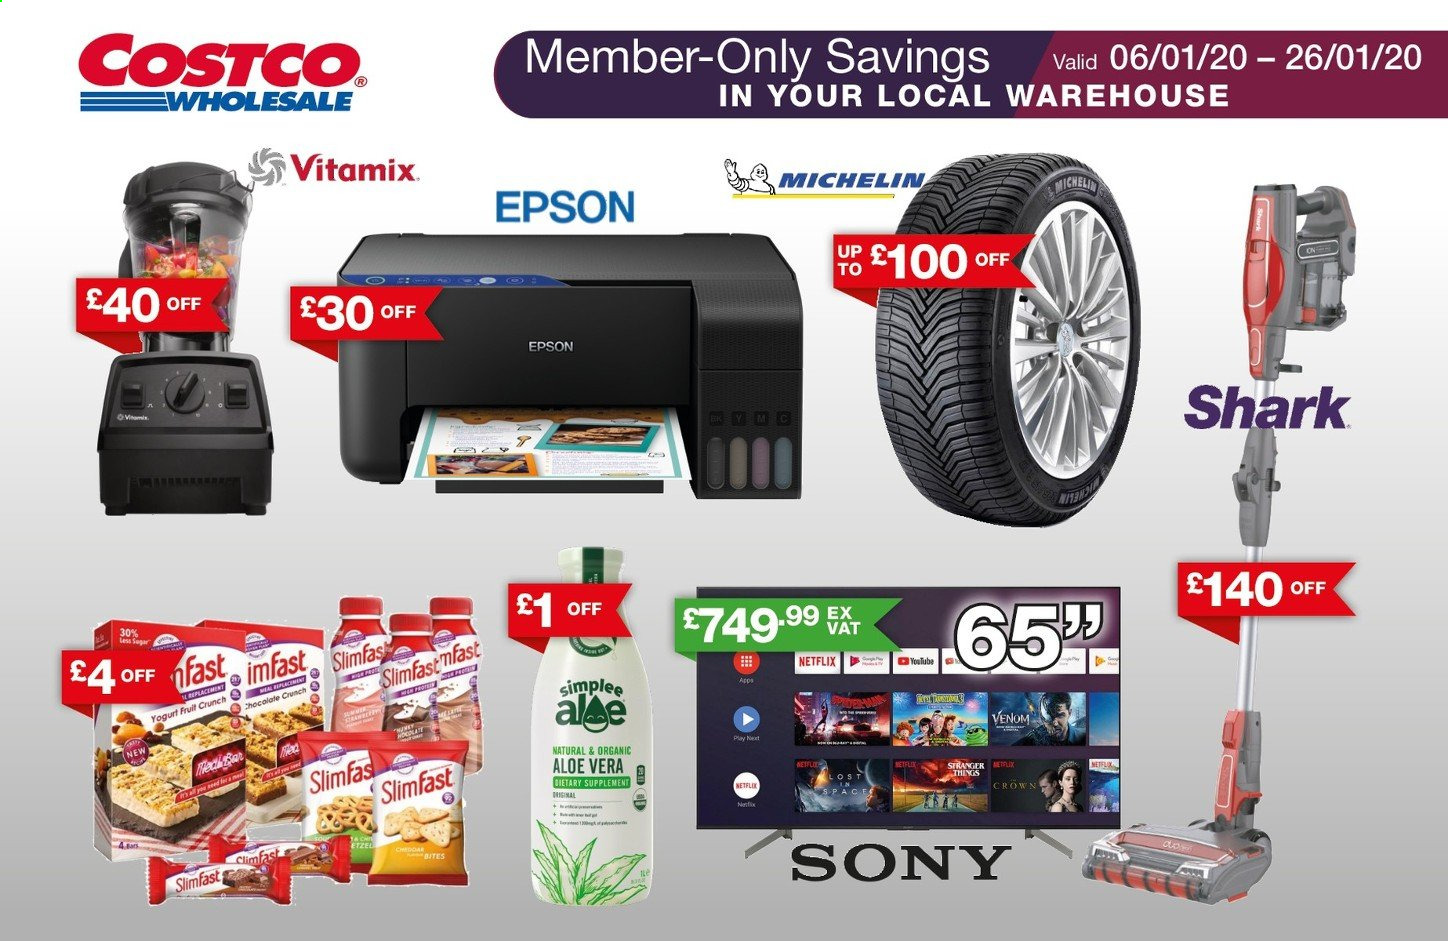 Costco offer  - 6.1.2020 - 26.1.2020. Page 1.